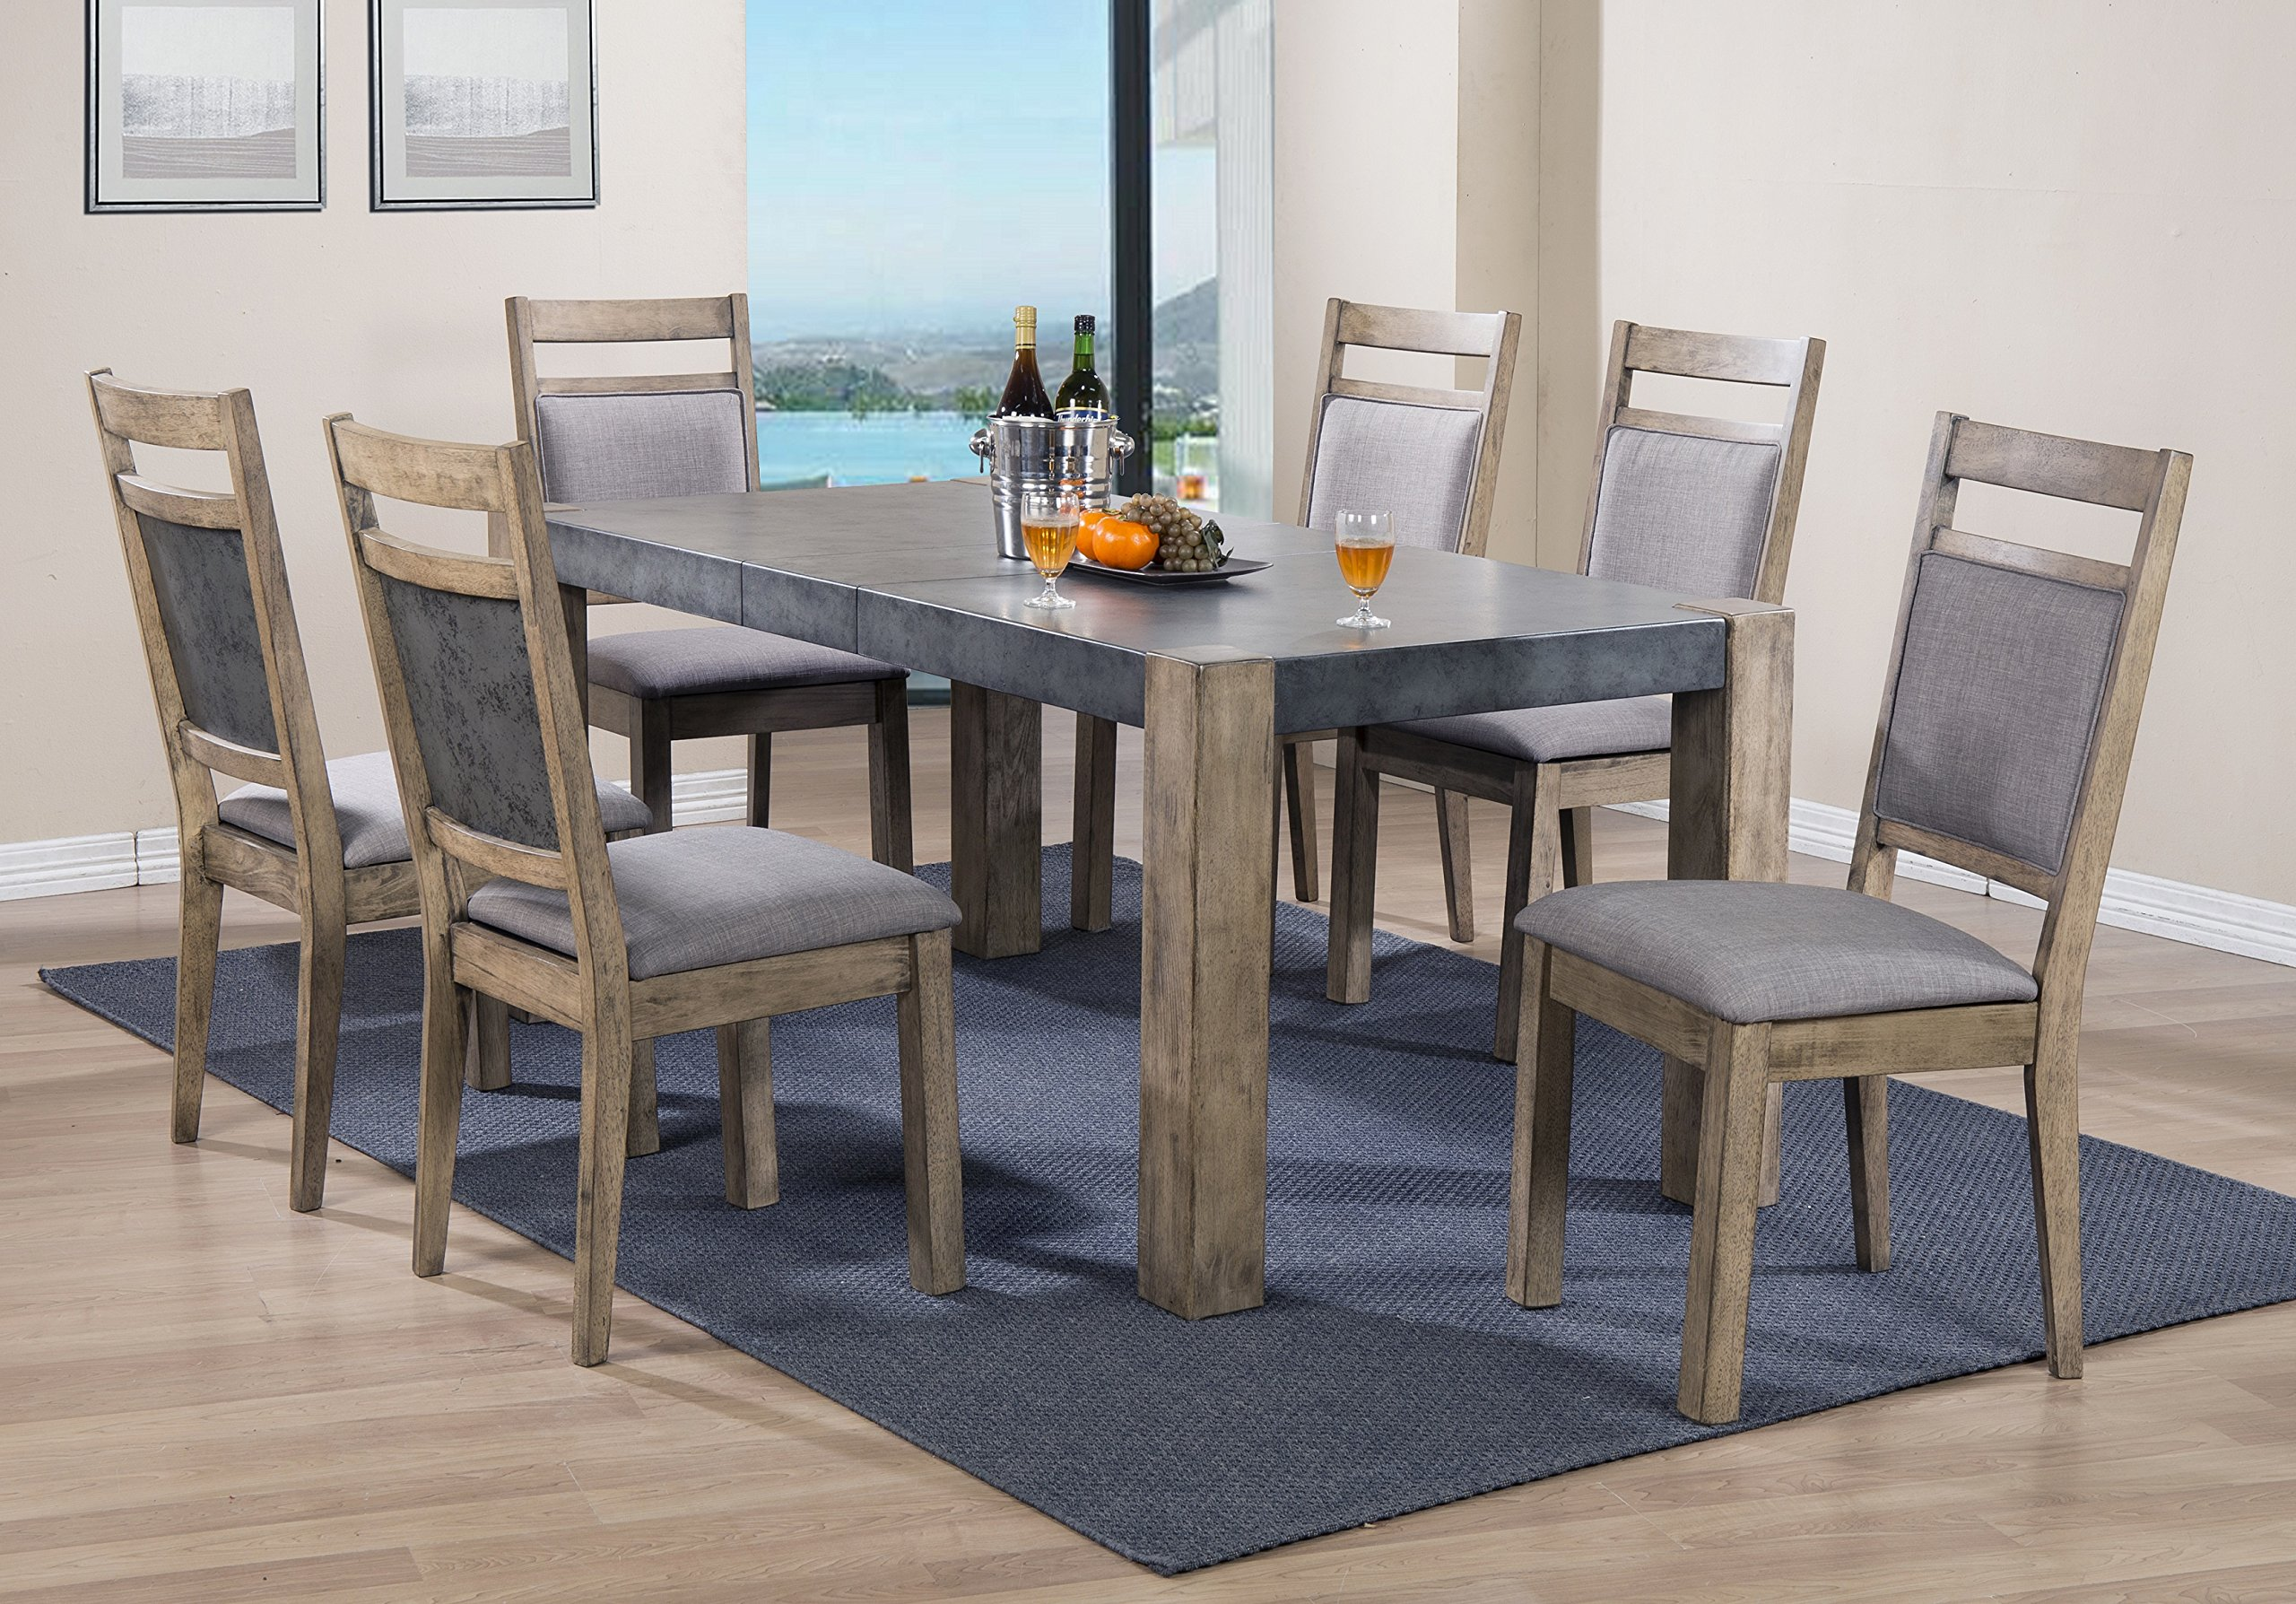 Roundhill Furniture D725-7PC Costabella Dining Collection 7 PC Set, Table with 6 Chairs